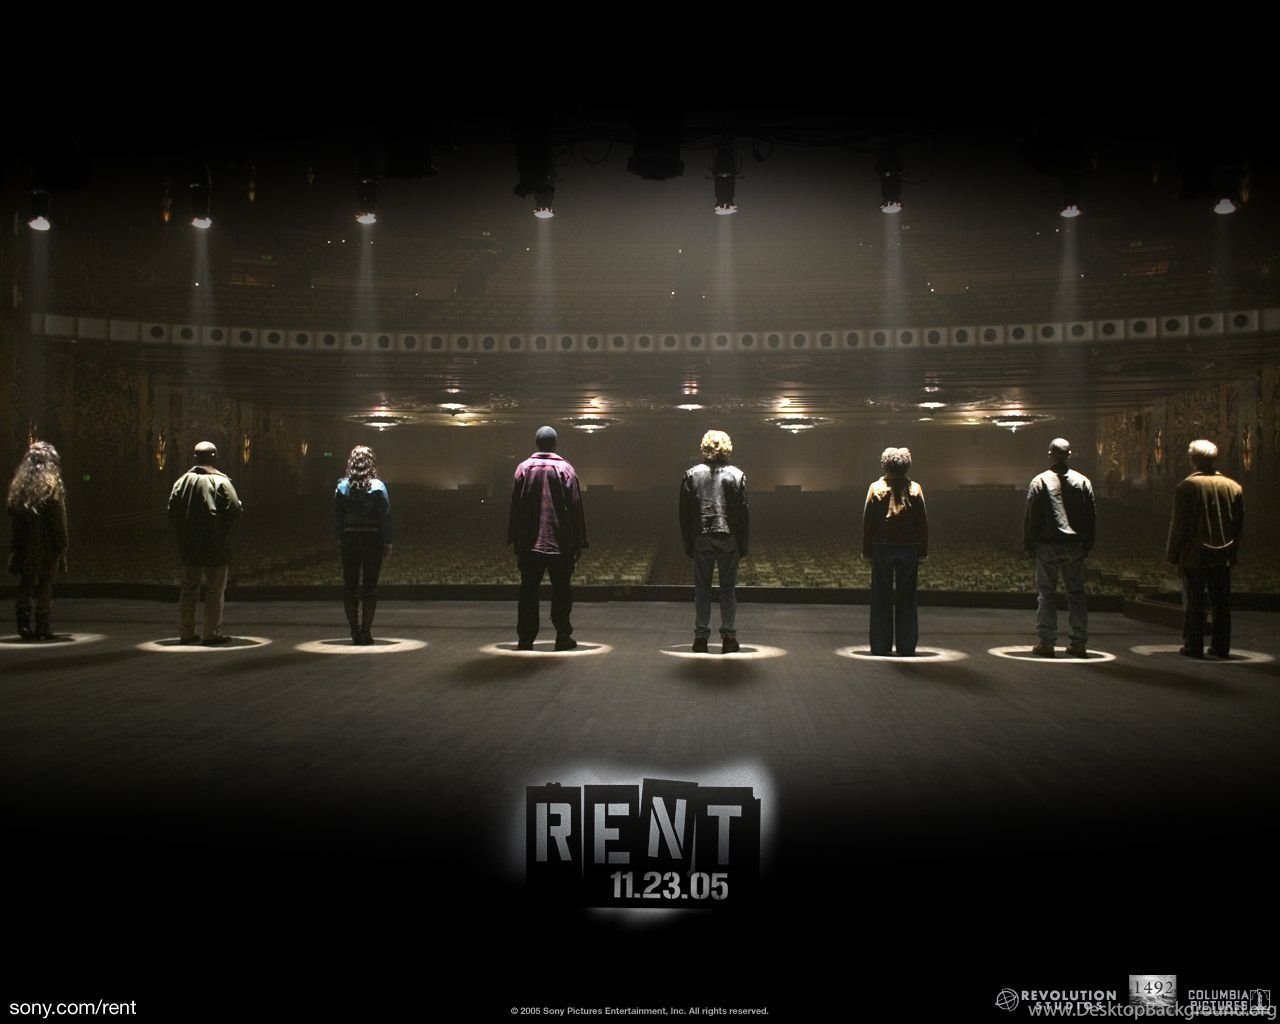 Gallery For Rent Musical Wallpapers Desktop Background 1280x1024